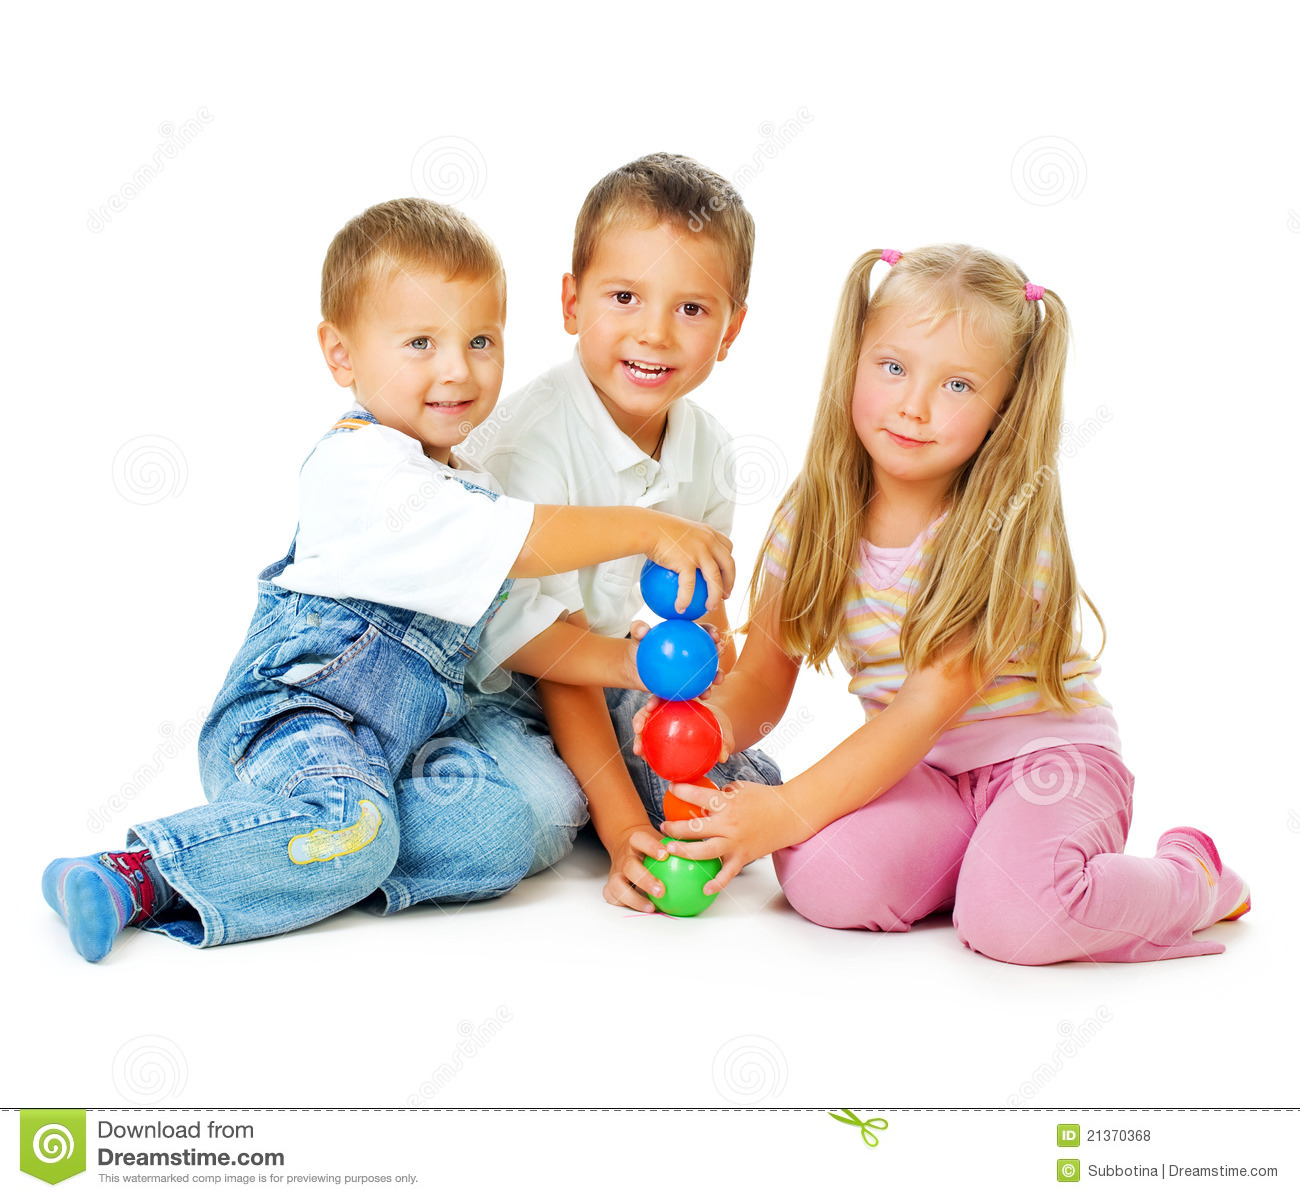 children playing on the floor - Kids Images Free Download